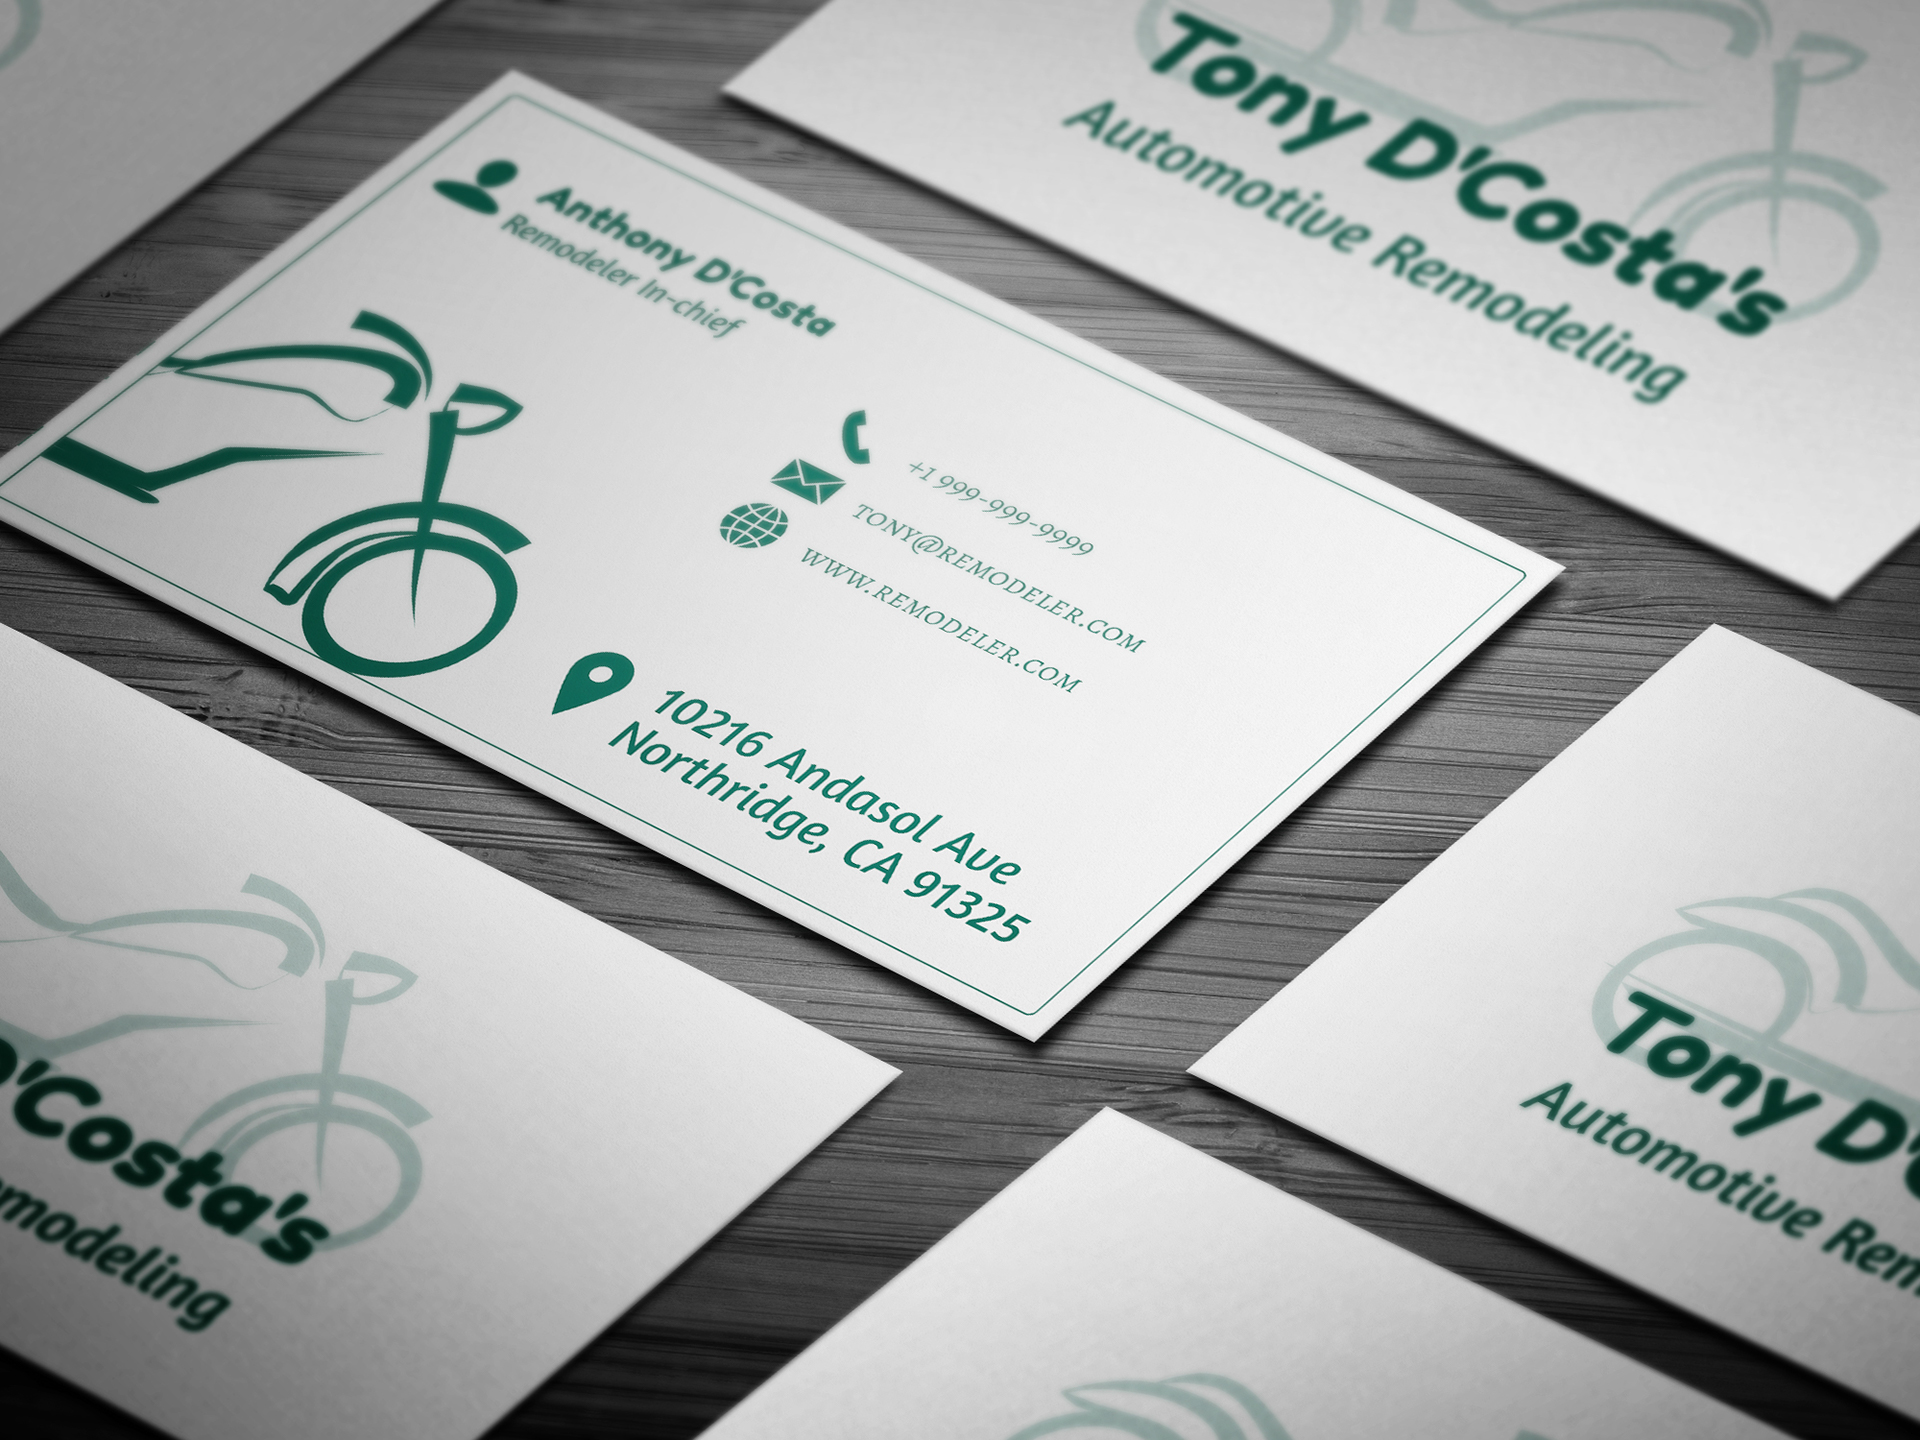 10 Free Automotive Business Card Templates On Behance